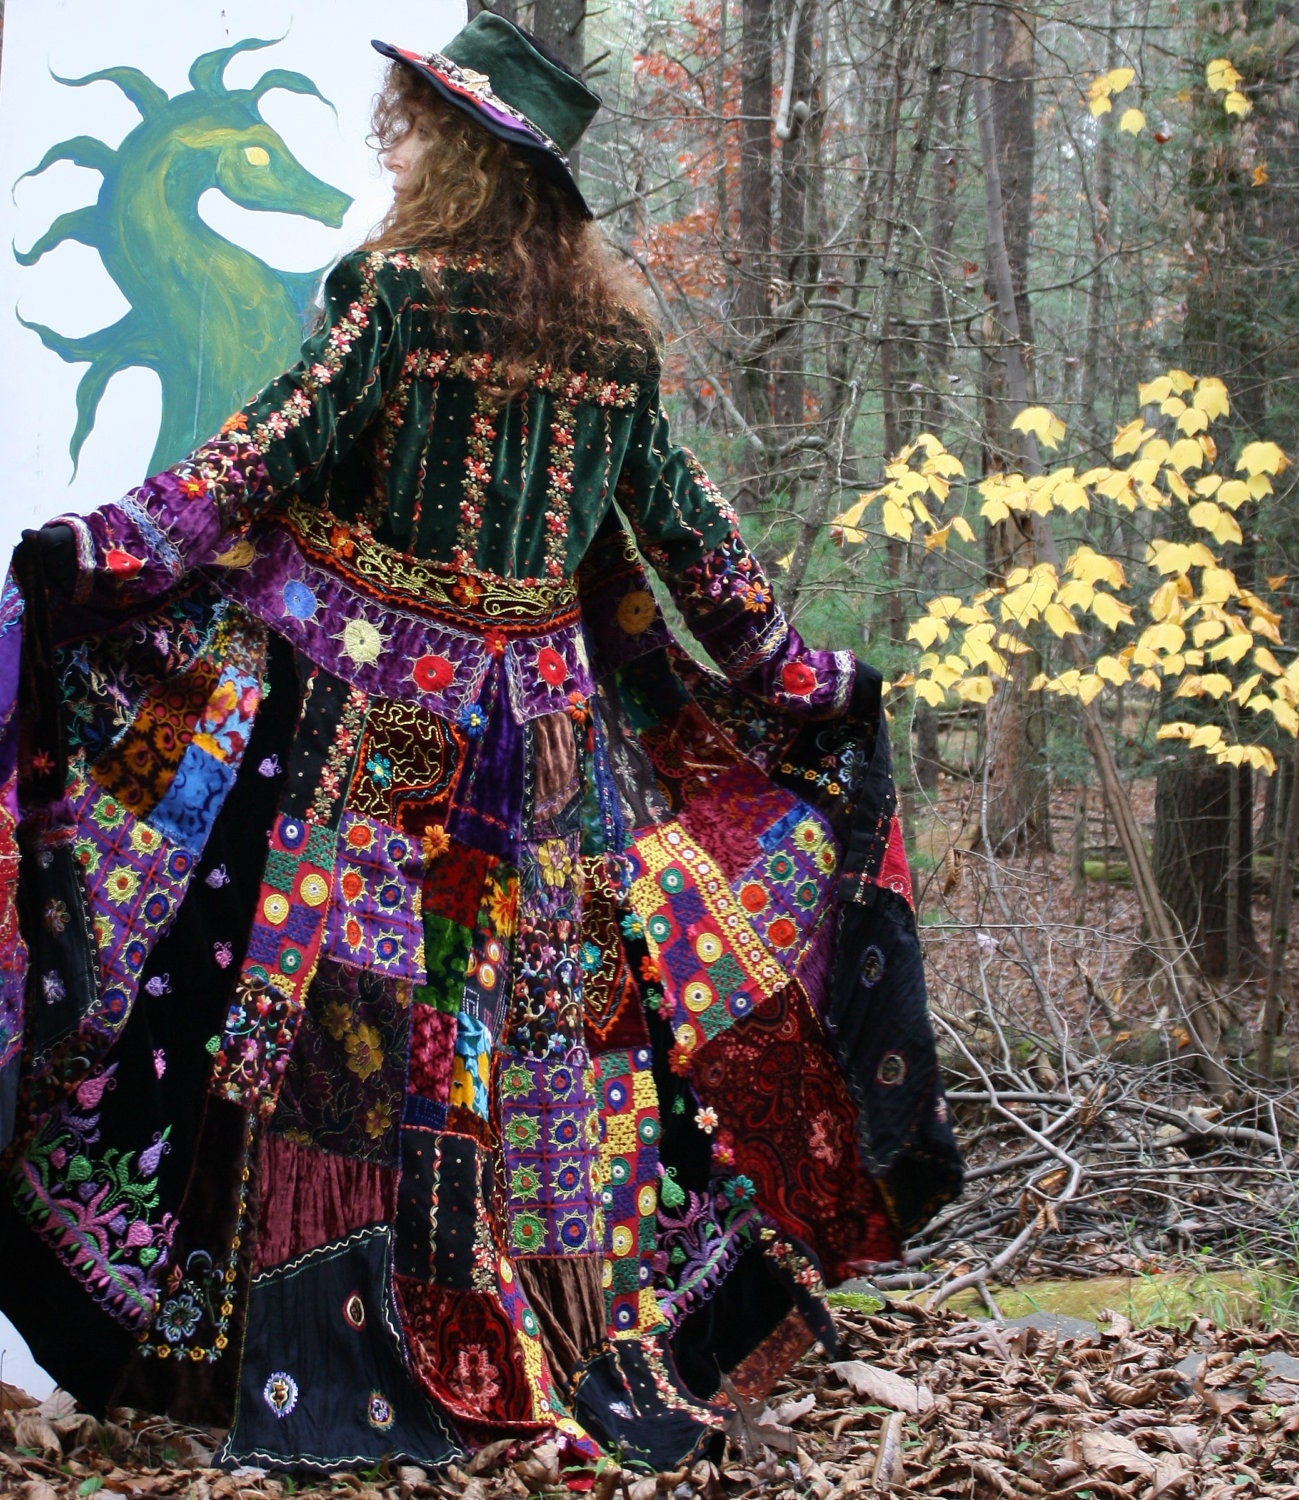 Vintage Magical Hippie Elf Fairy Tale Coat Embroidered Patchwork Velvet Special Order for M Balance Please Do not Purchase